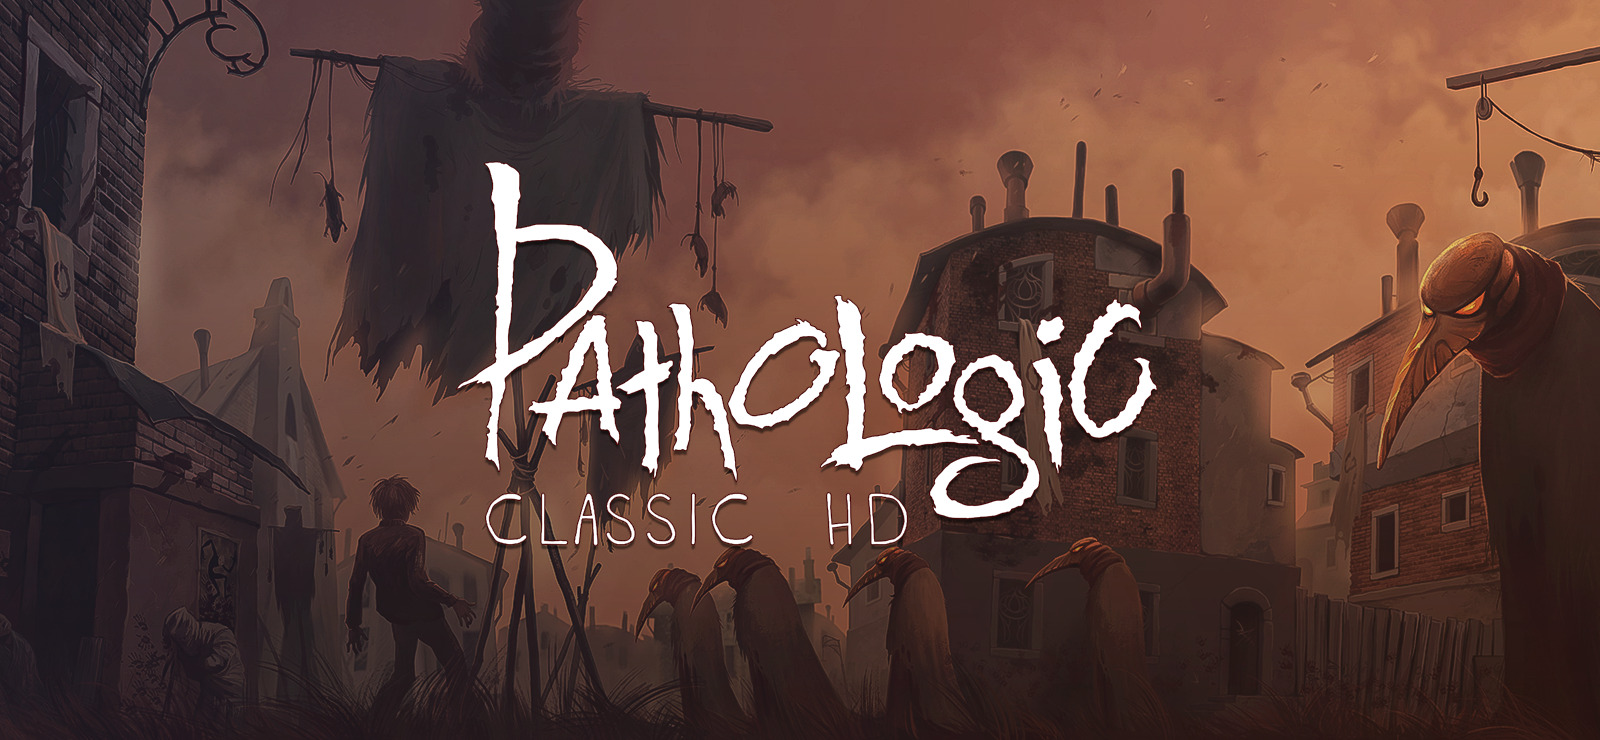 Pathologic Classic HD Game Download Free For Pc | MYITCLUB